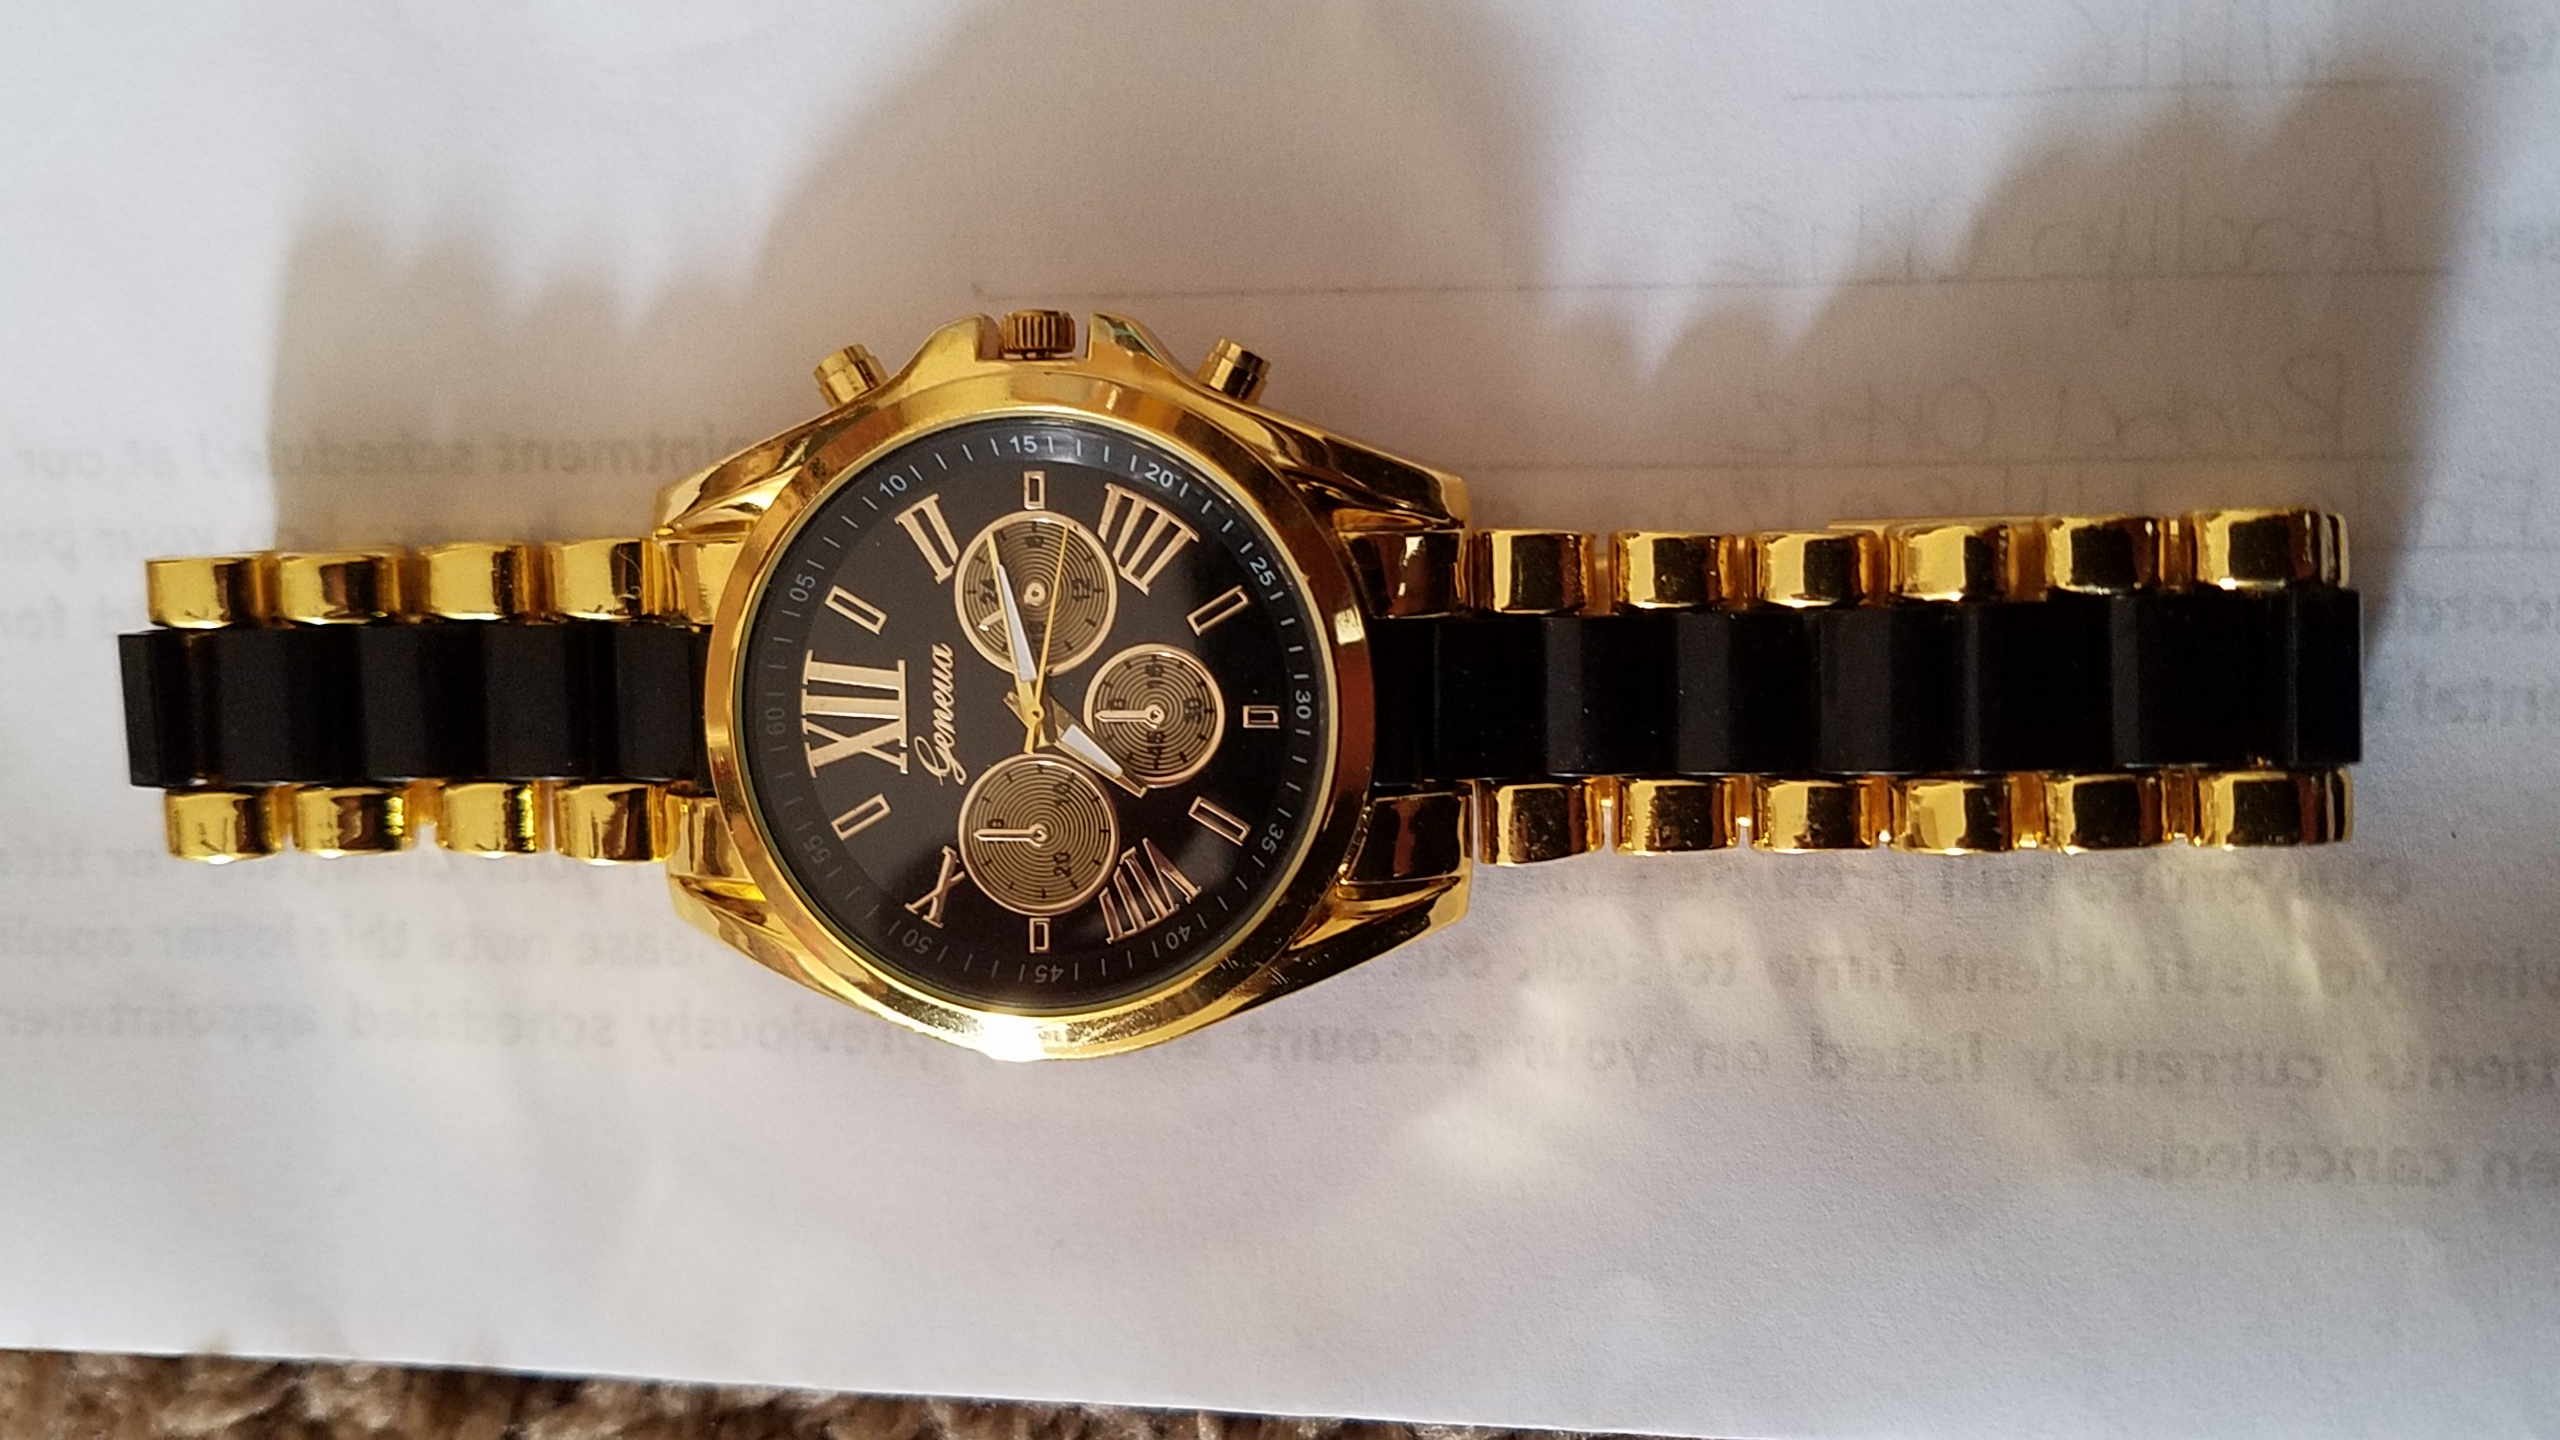 The worst watch I have ever bought!